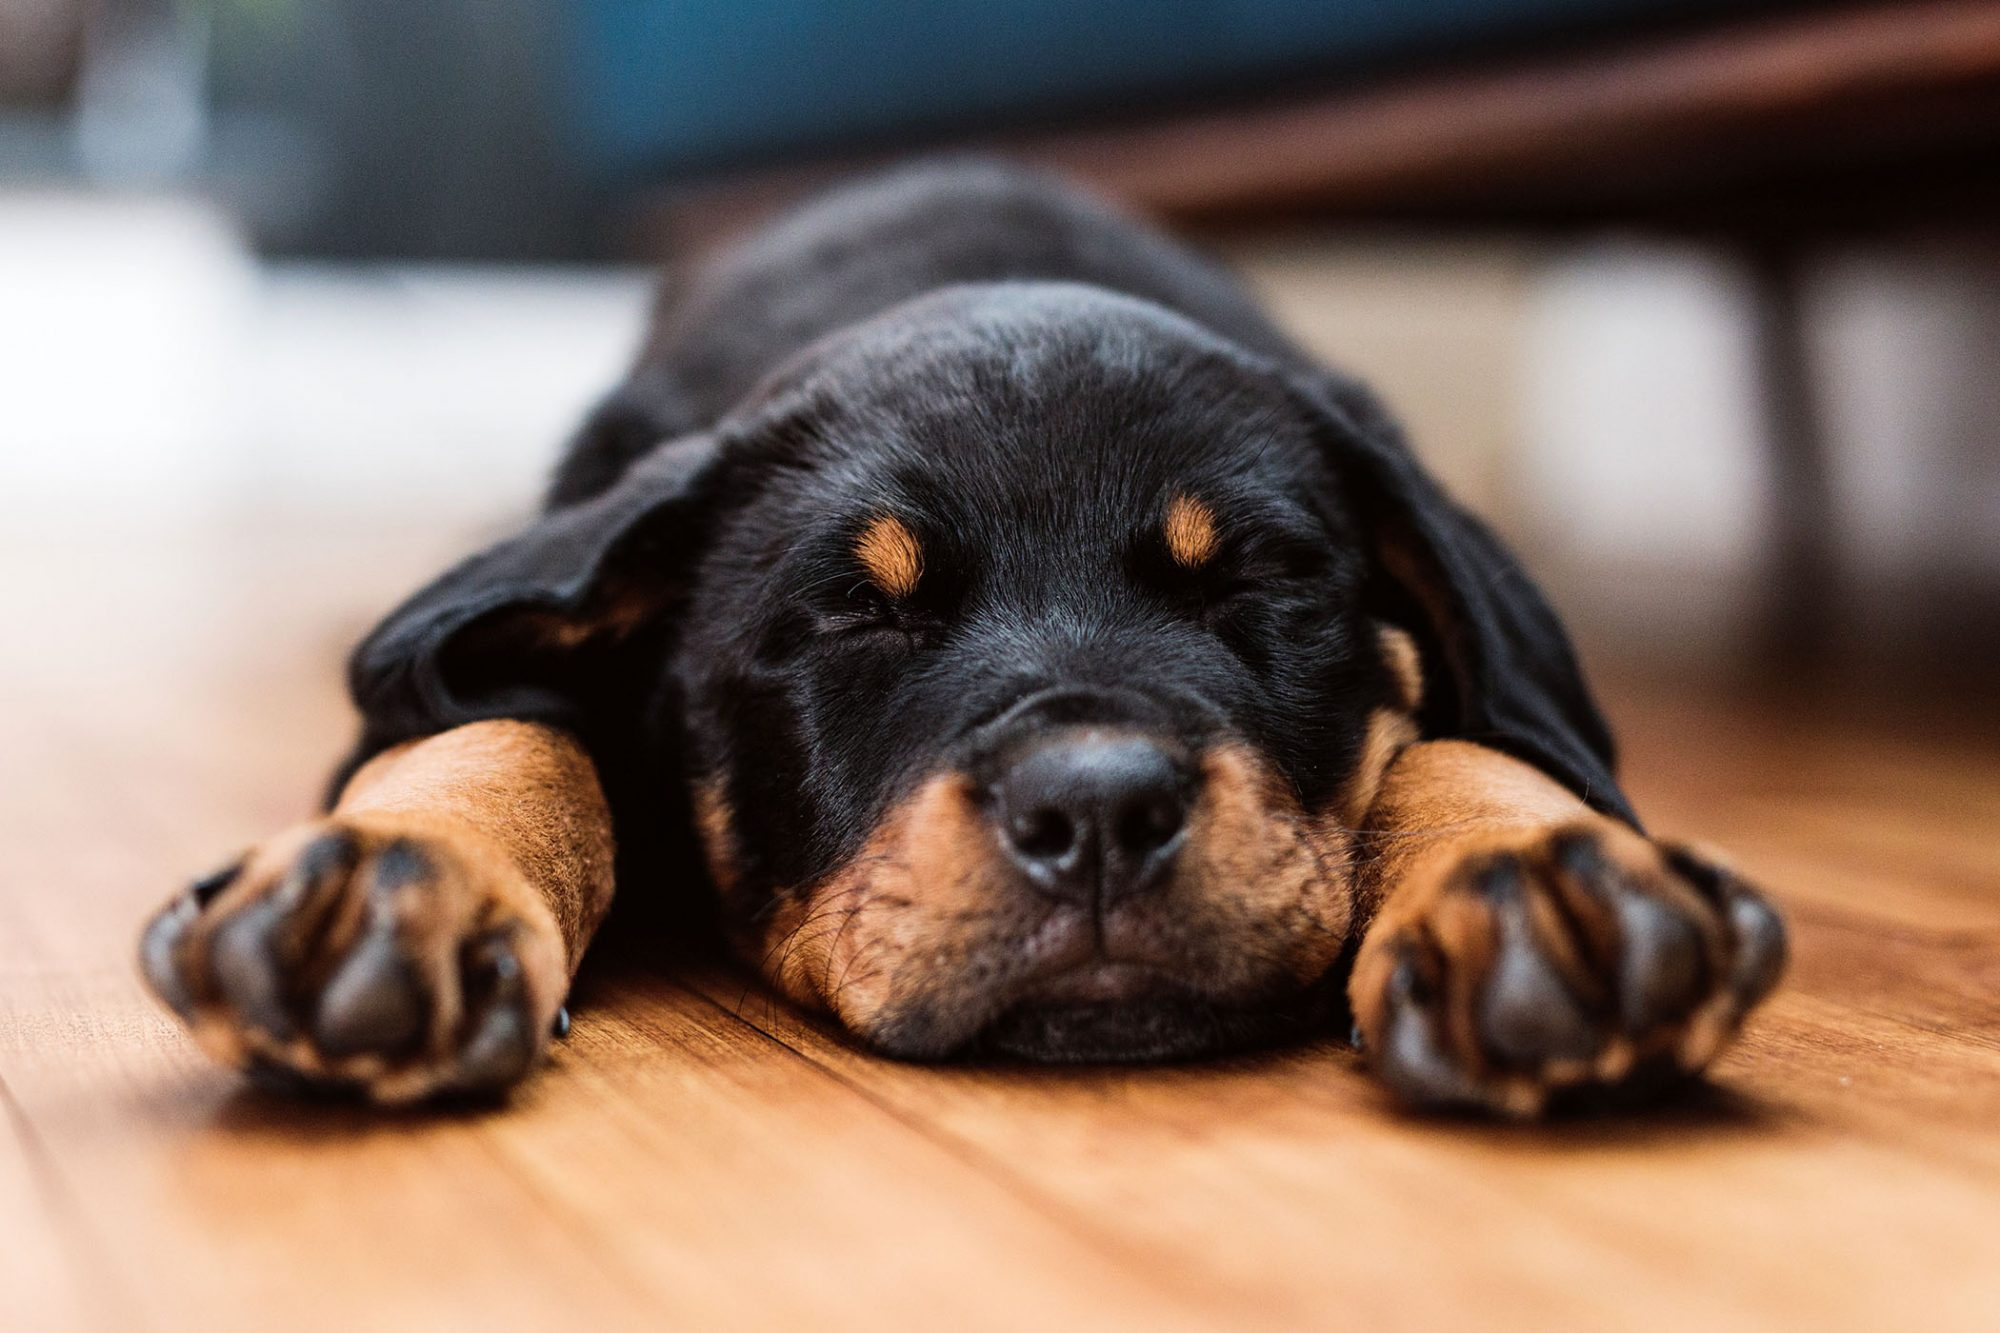 rottweiler puppy asleep on floor